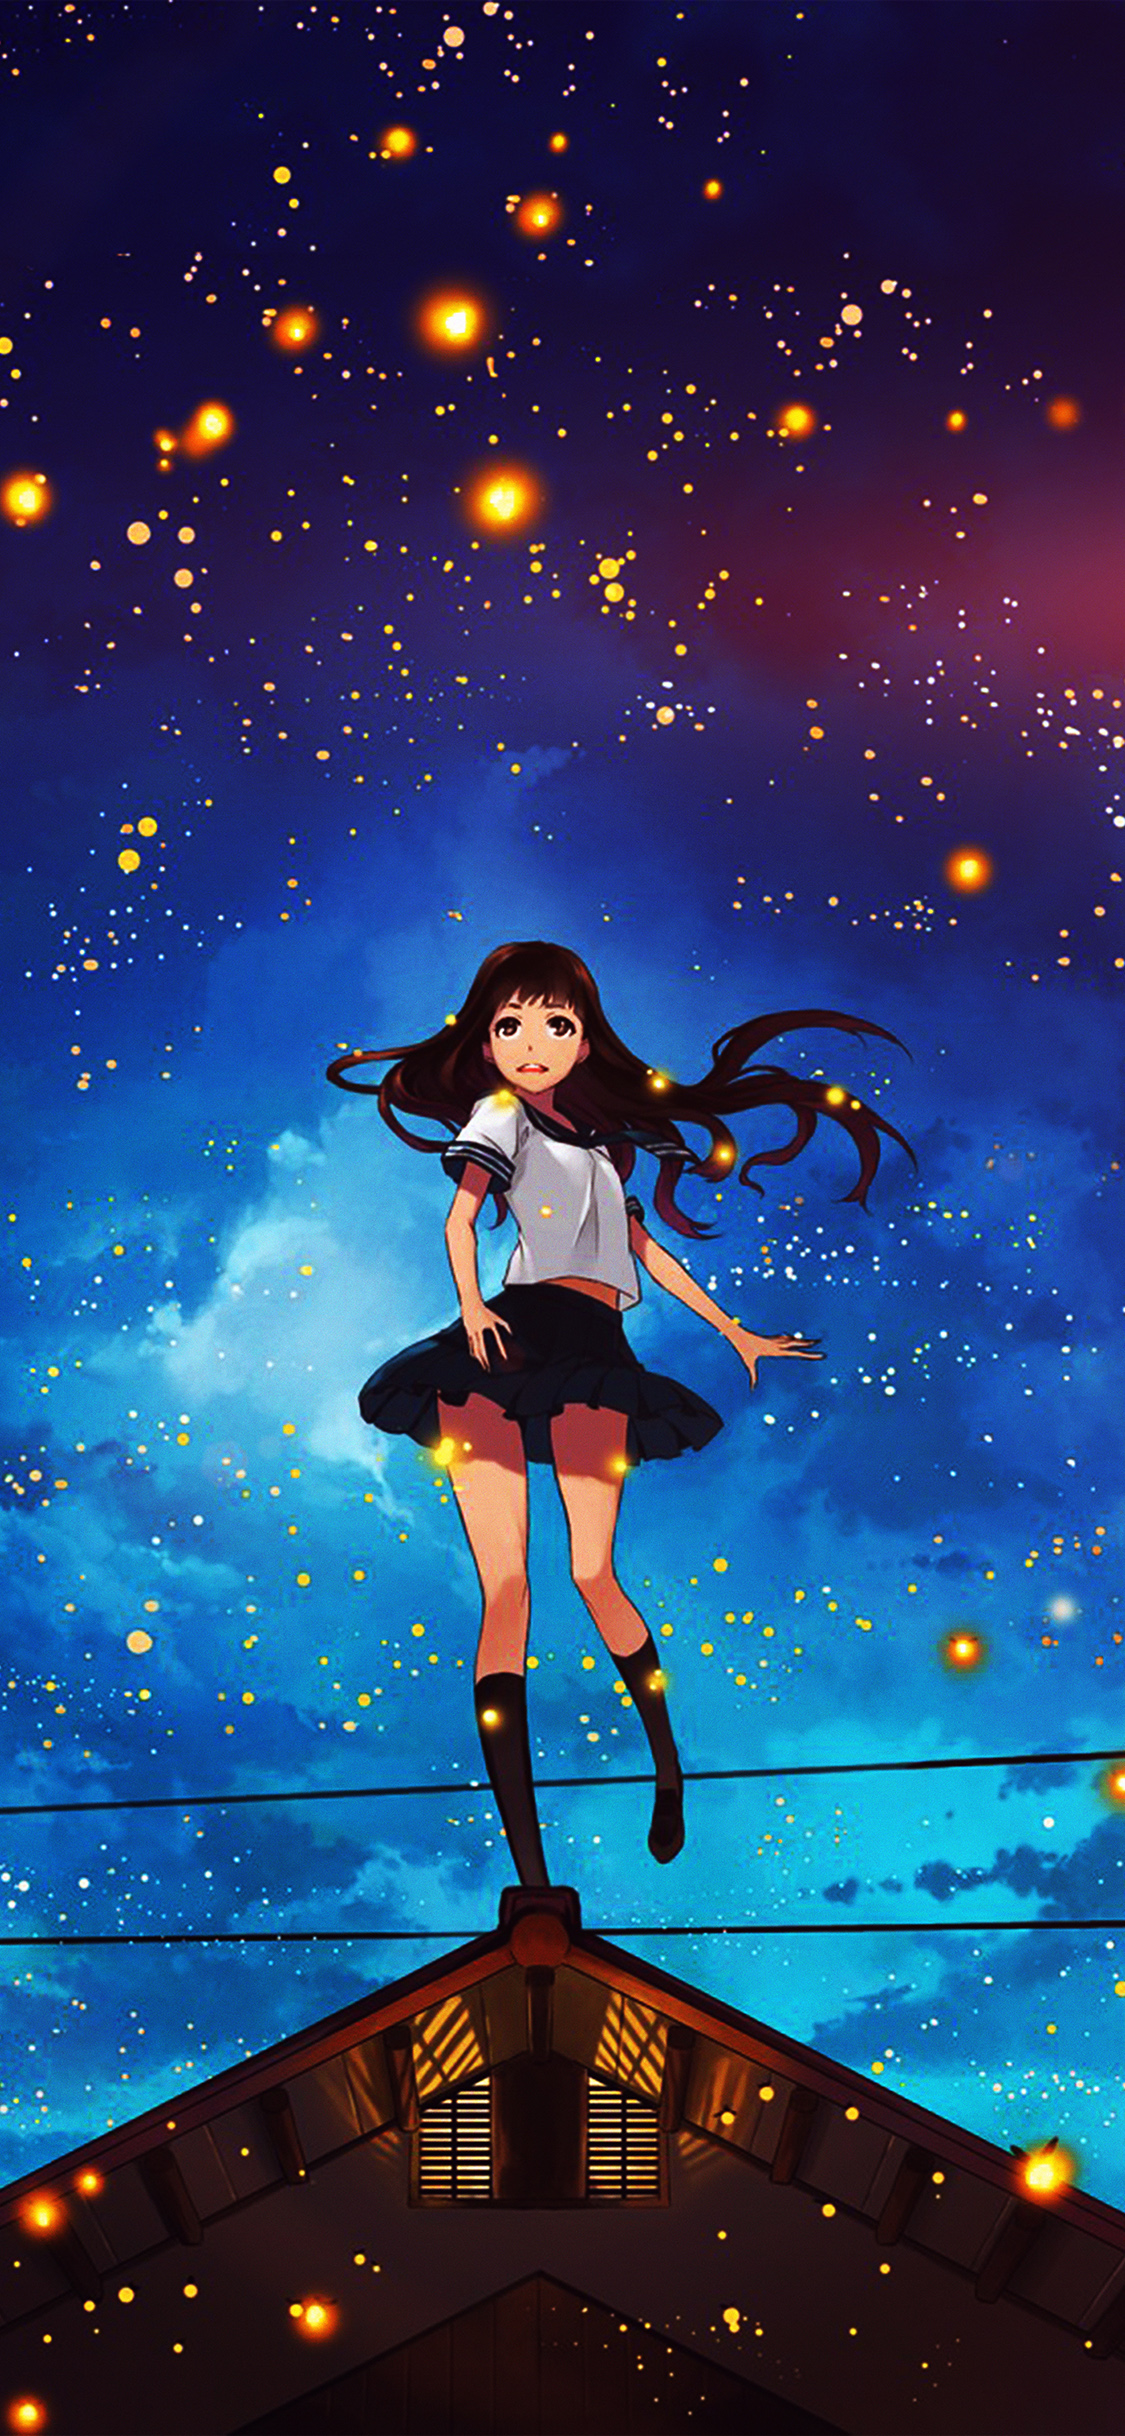 iPhoneXpapers.com-Apple-iPhone-wallpaper-au47-girl-anime-star-space-night-illustration-art-flare